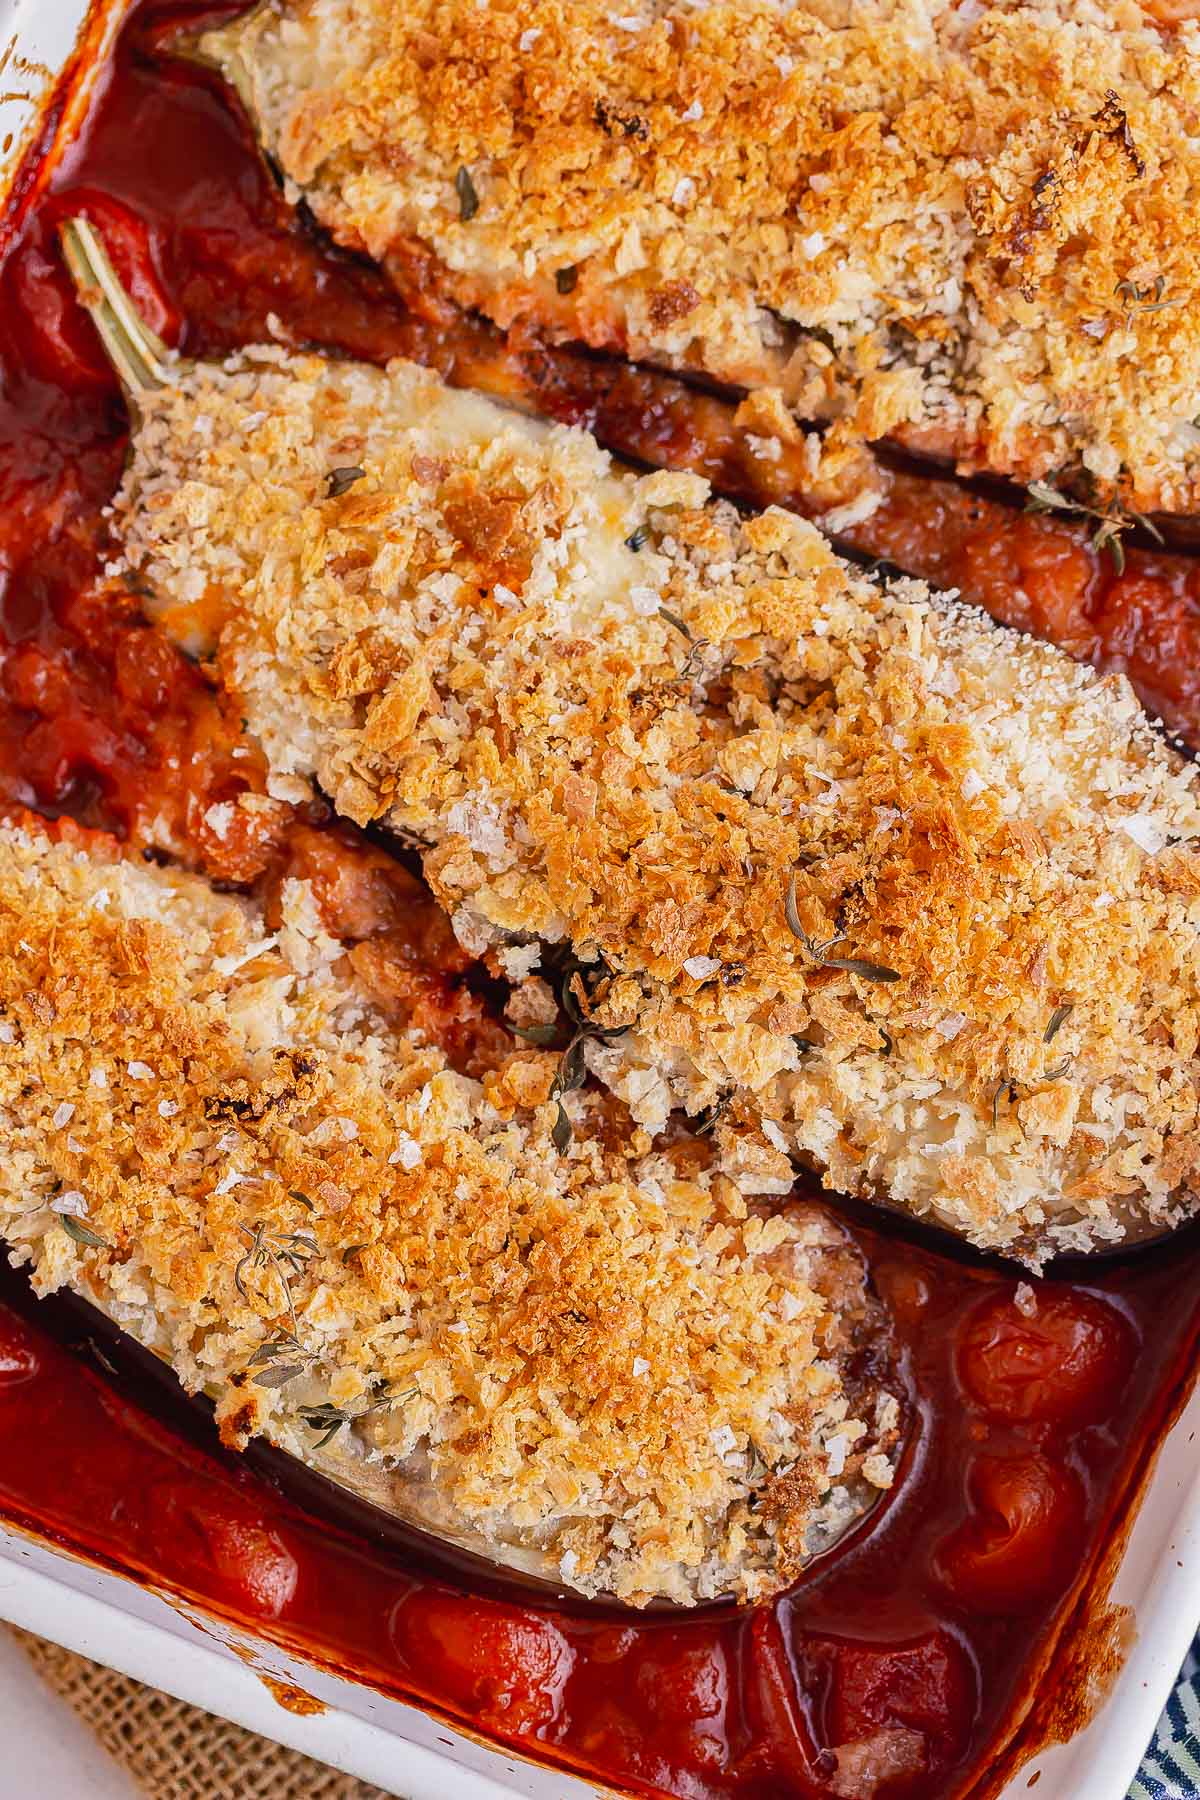 Close up of aubergine topped with breadcrumbs in a tomato sauce